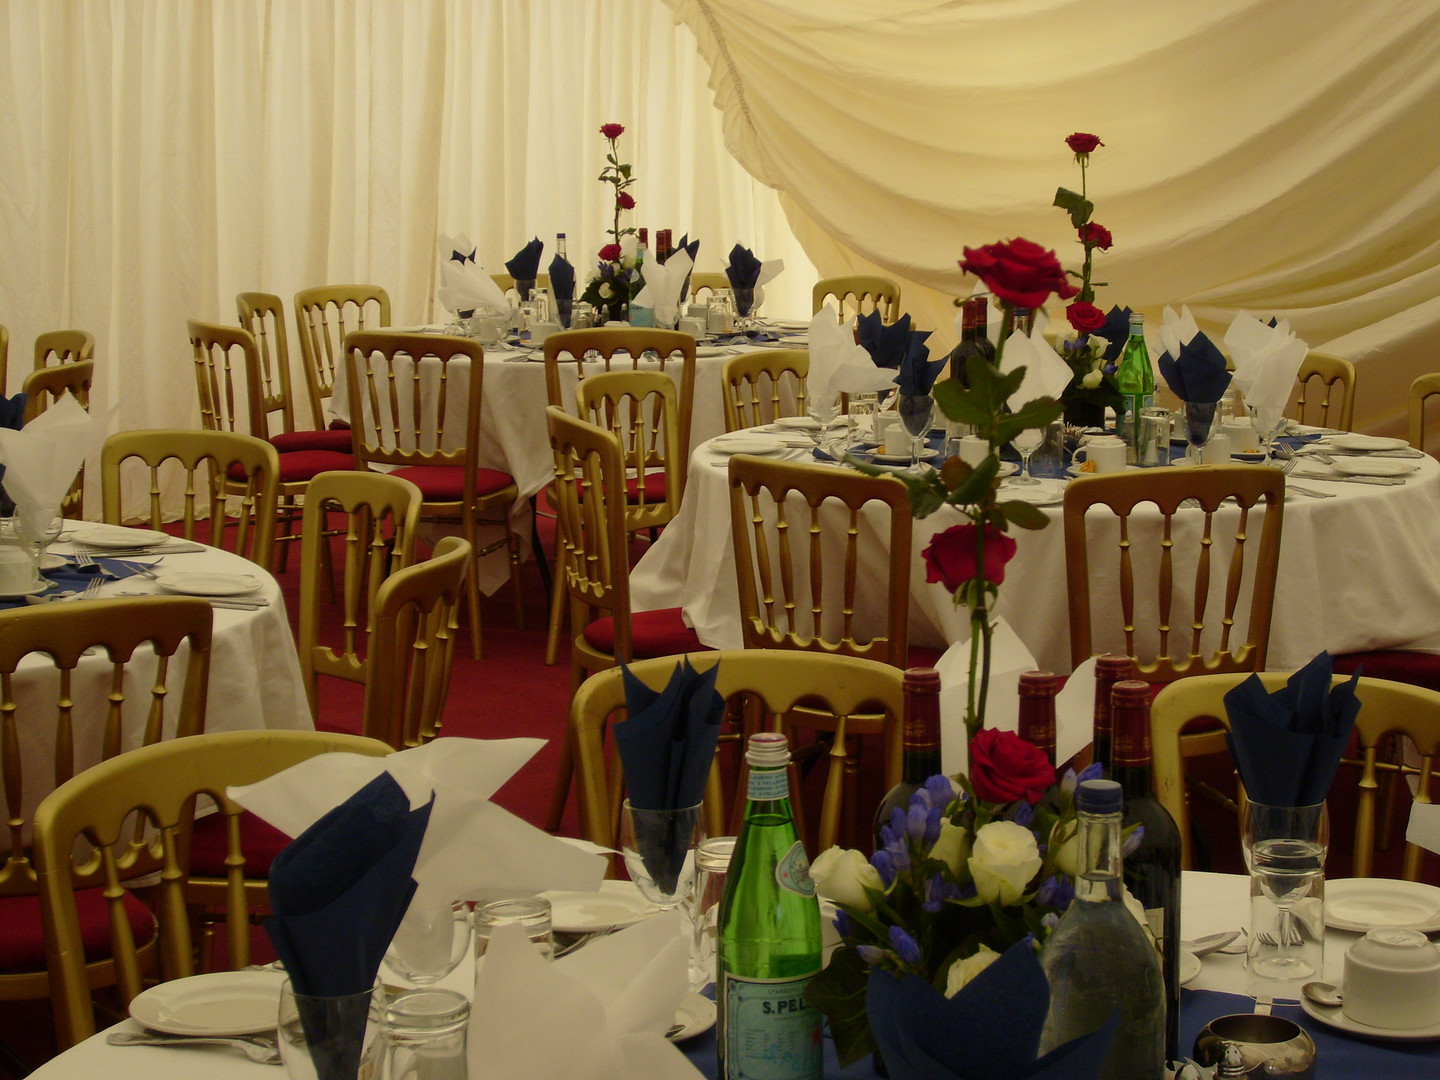 Marquee Themed Event Red White and Blue